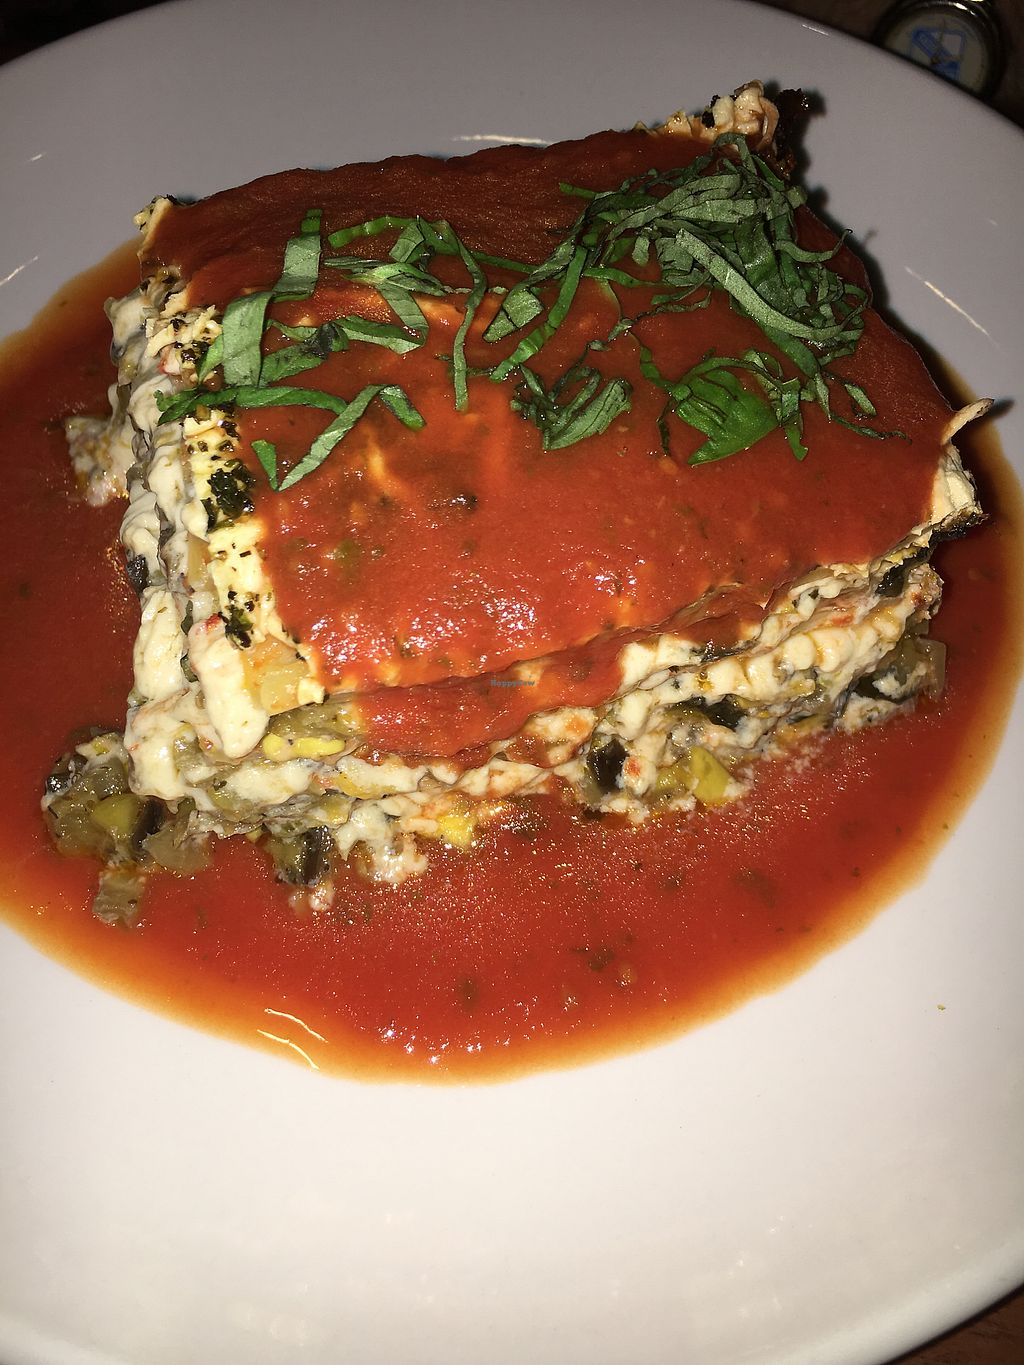 "Photo of Sublime Restaurant and Bar  by <a href=""/members/profile/daroff"">daroff</a> <br/>Lasagna  <br/> October 25, 2017  - <a href='/contact/abuse/image/2749/318628'>Report</a>"